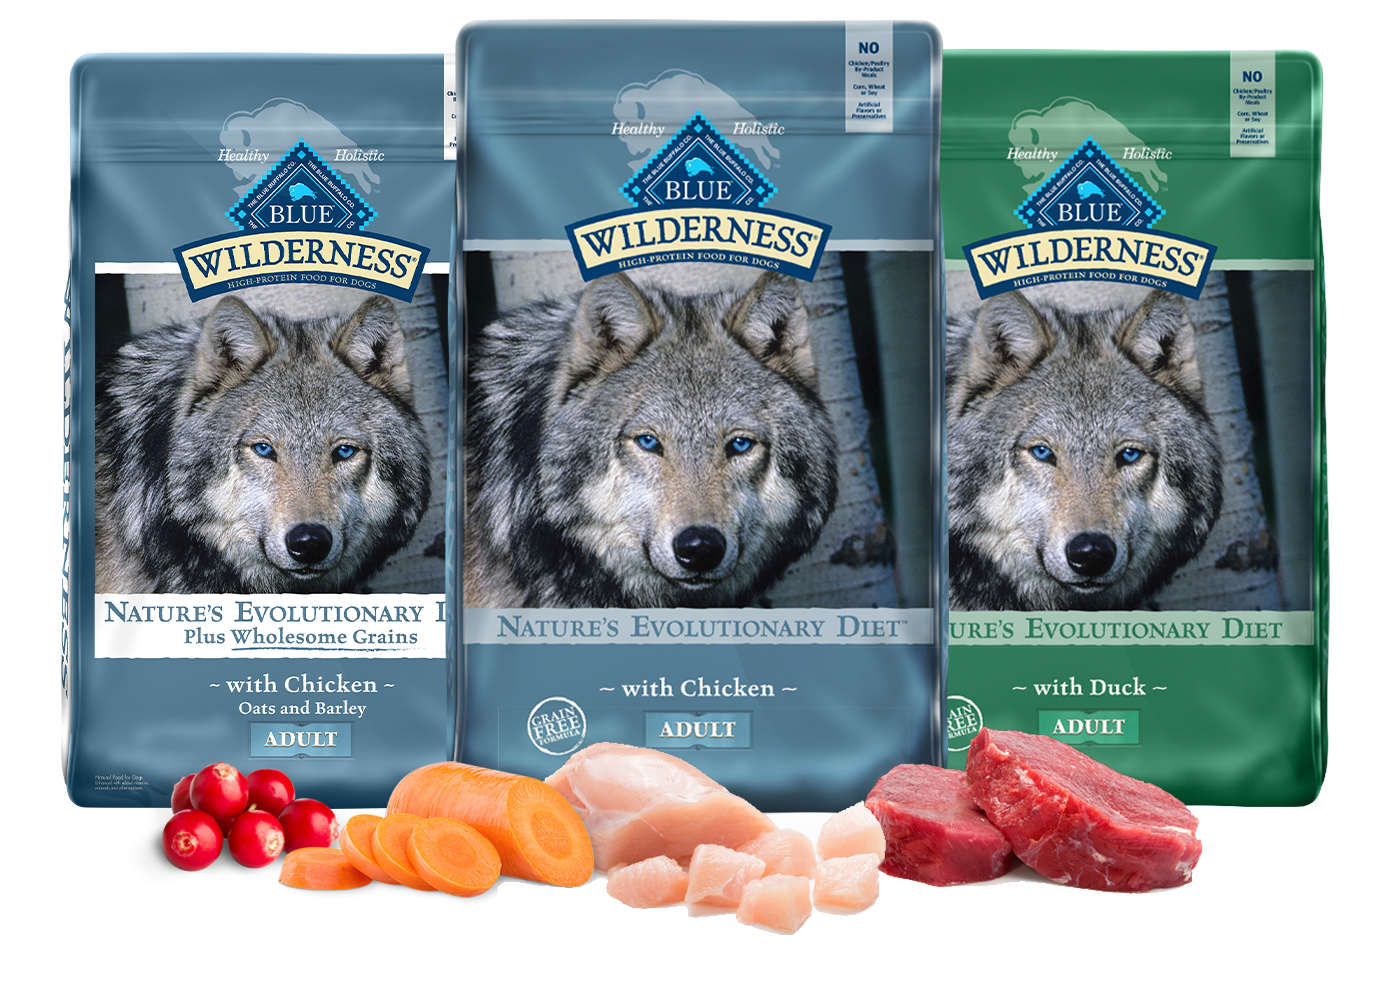 Blue Buffalo Wilderness Adult Dog Food Grain Free Natural Chicken Dog Dry Food Petsmart